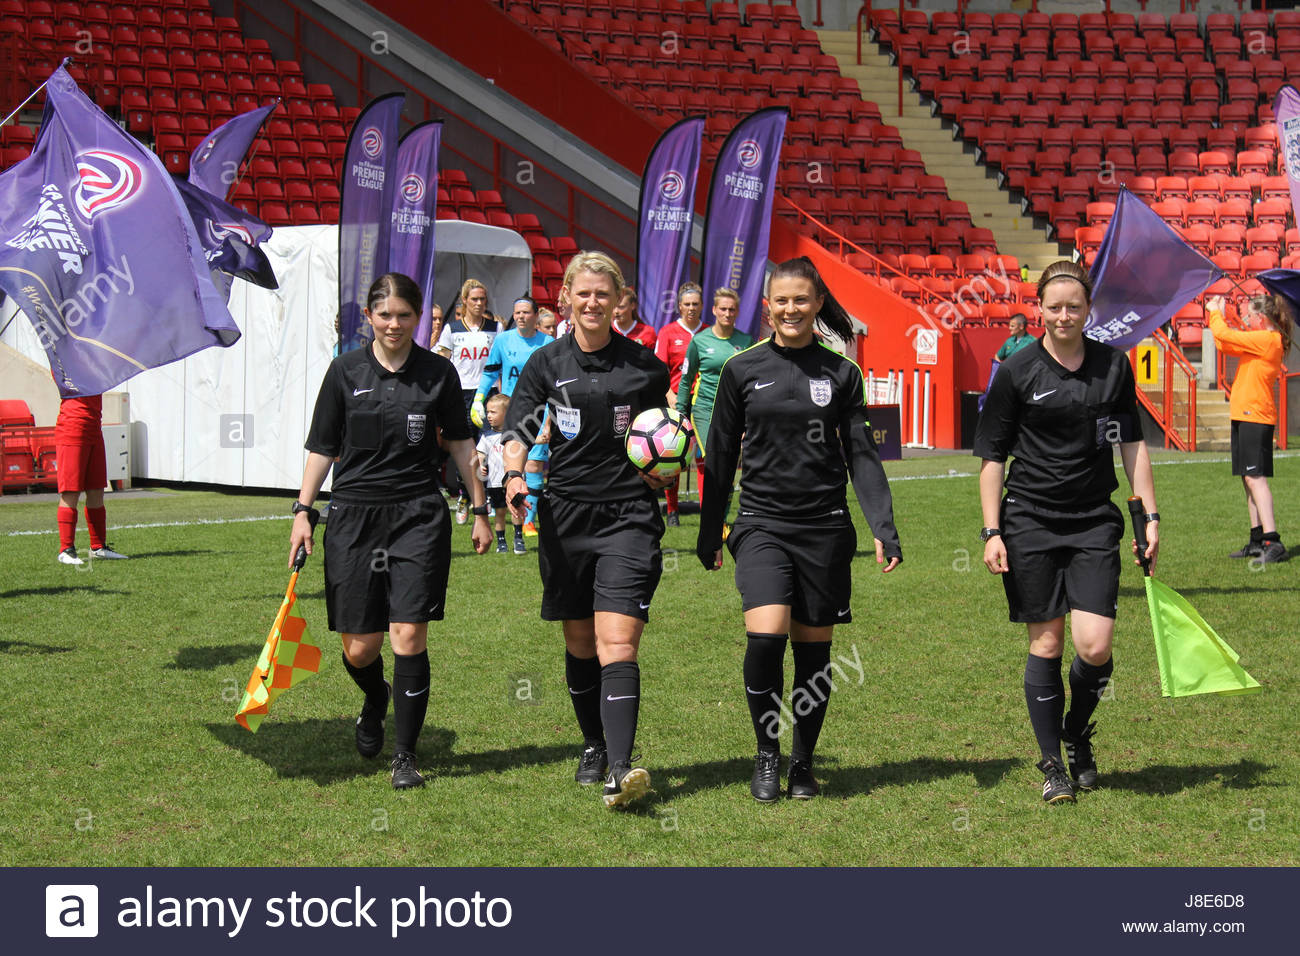 London, UK. 28th May, 2017. Referee Sarah Garratt, assistant referees Sarah Grundy & Kirsty Dowle, and fourth - Stock Image